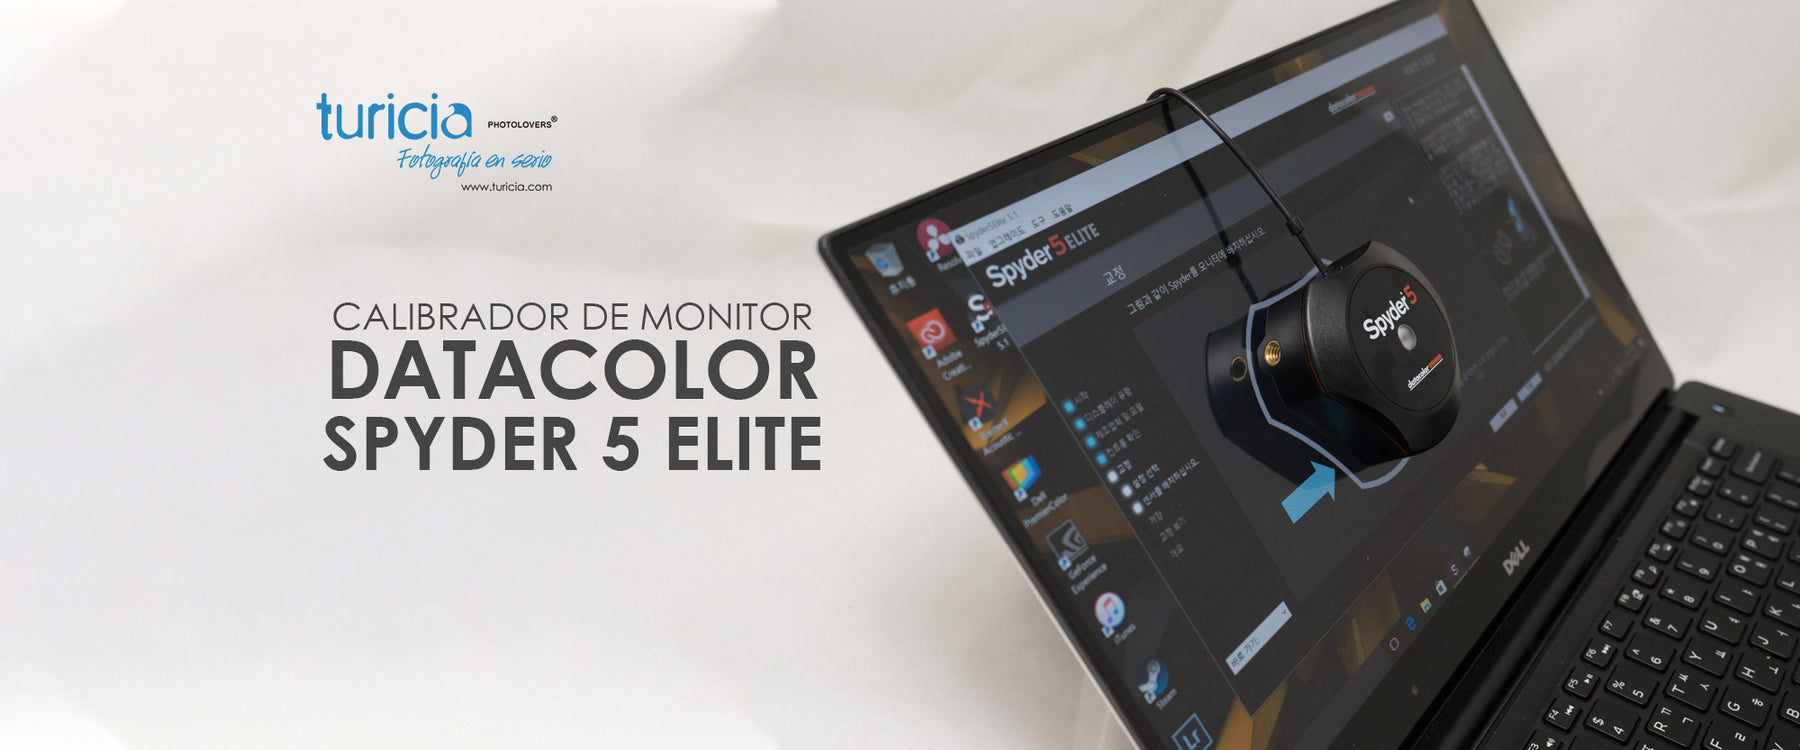 Calibrador de monitor Datacolor Spyder 5 Elite